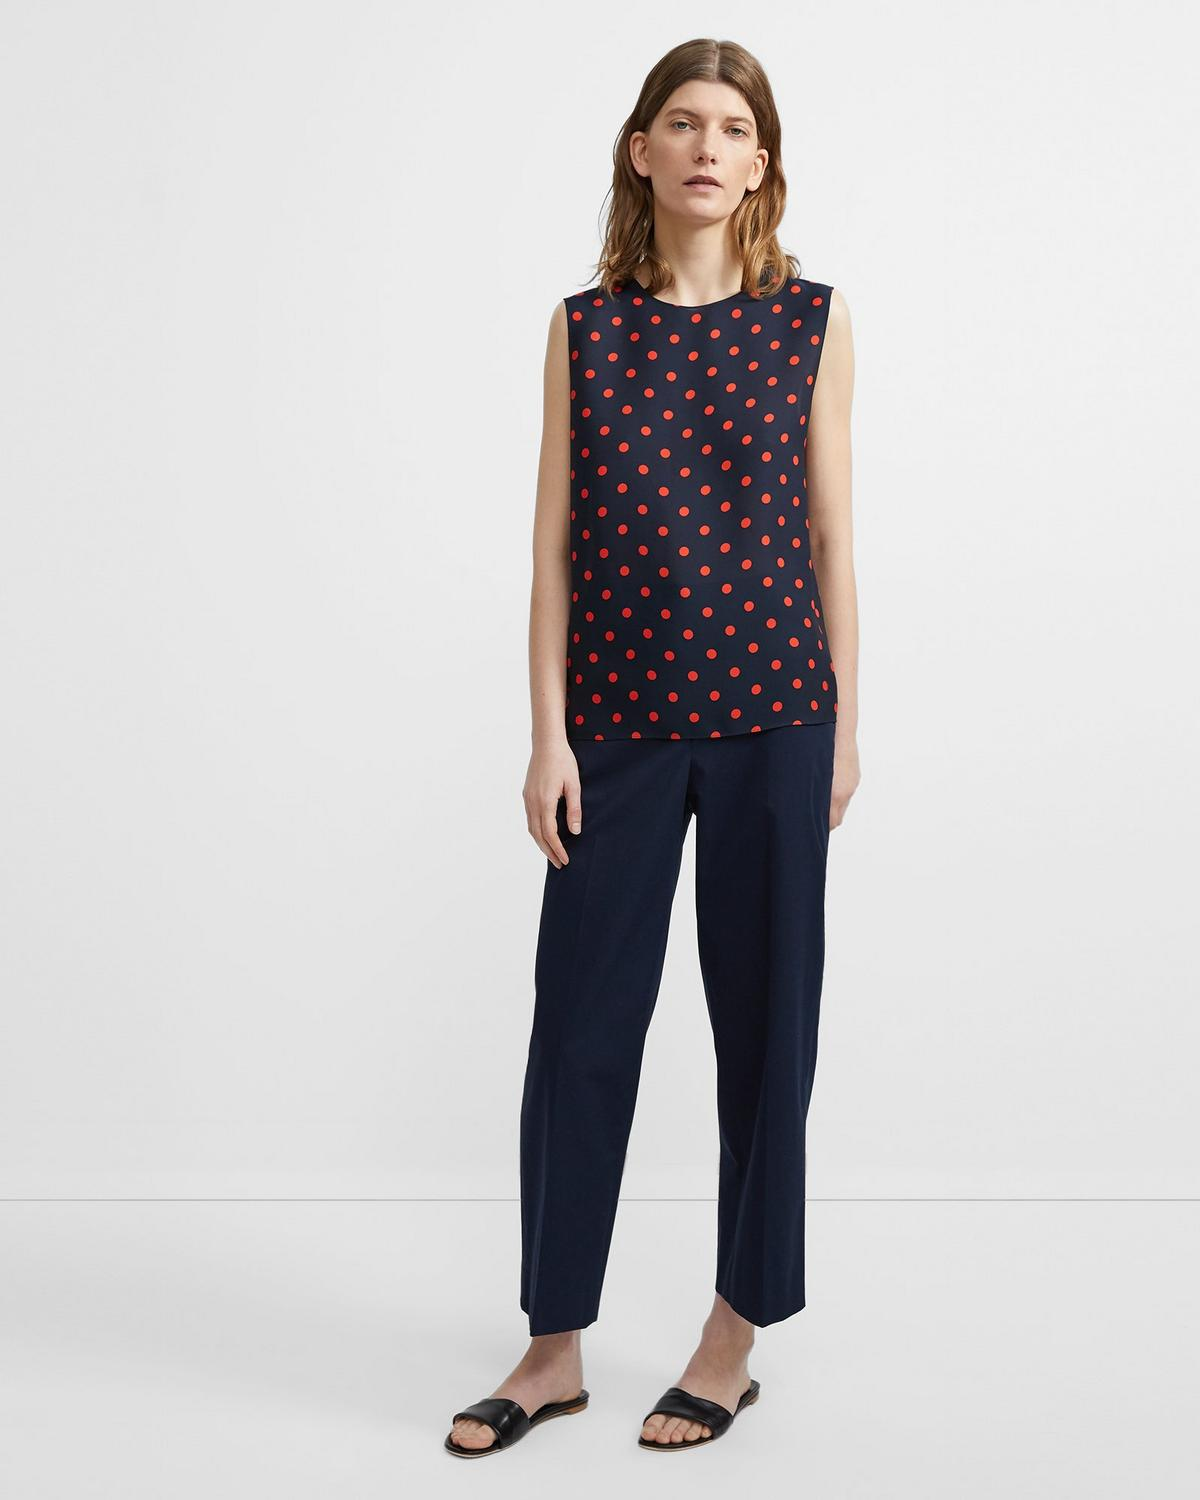 Shell Top in Neon Polka Dot Silk